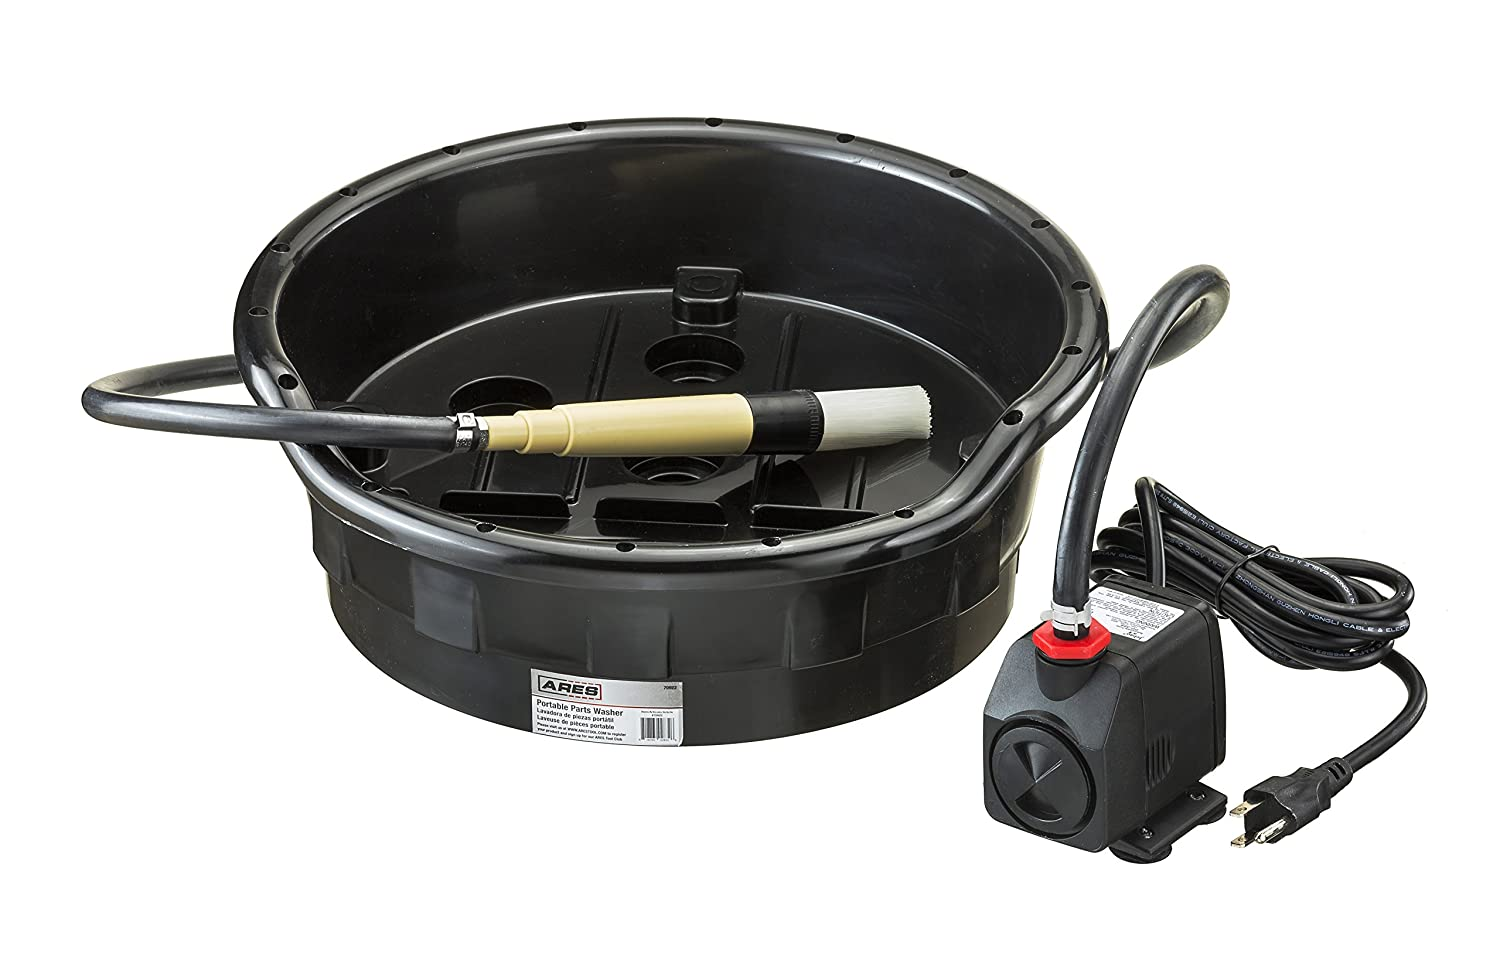 ARES 70922 - Portable Parts Washer - Easily Fits 5 Gallon Buckets - Degrease Small Parts and Tools